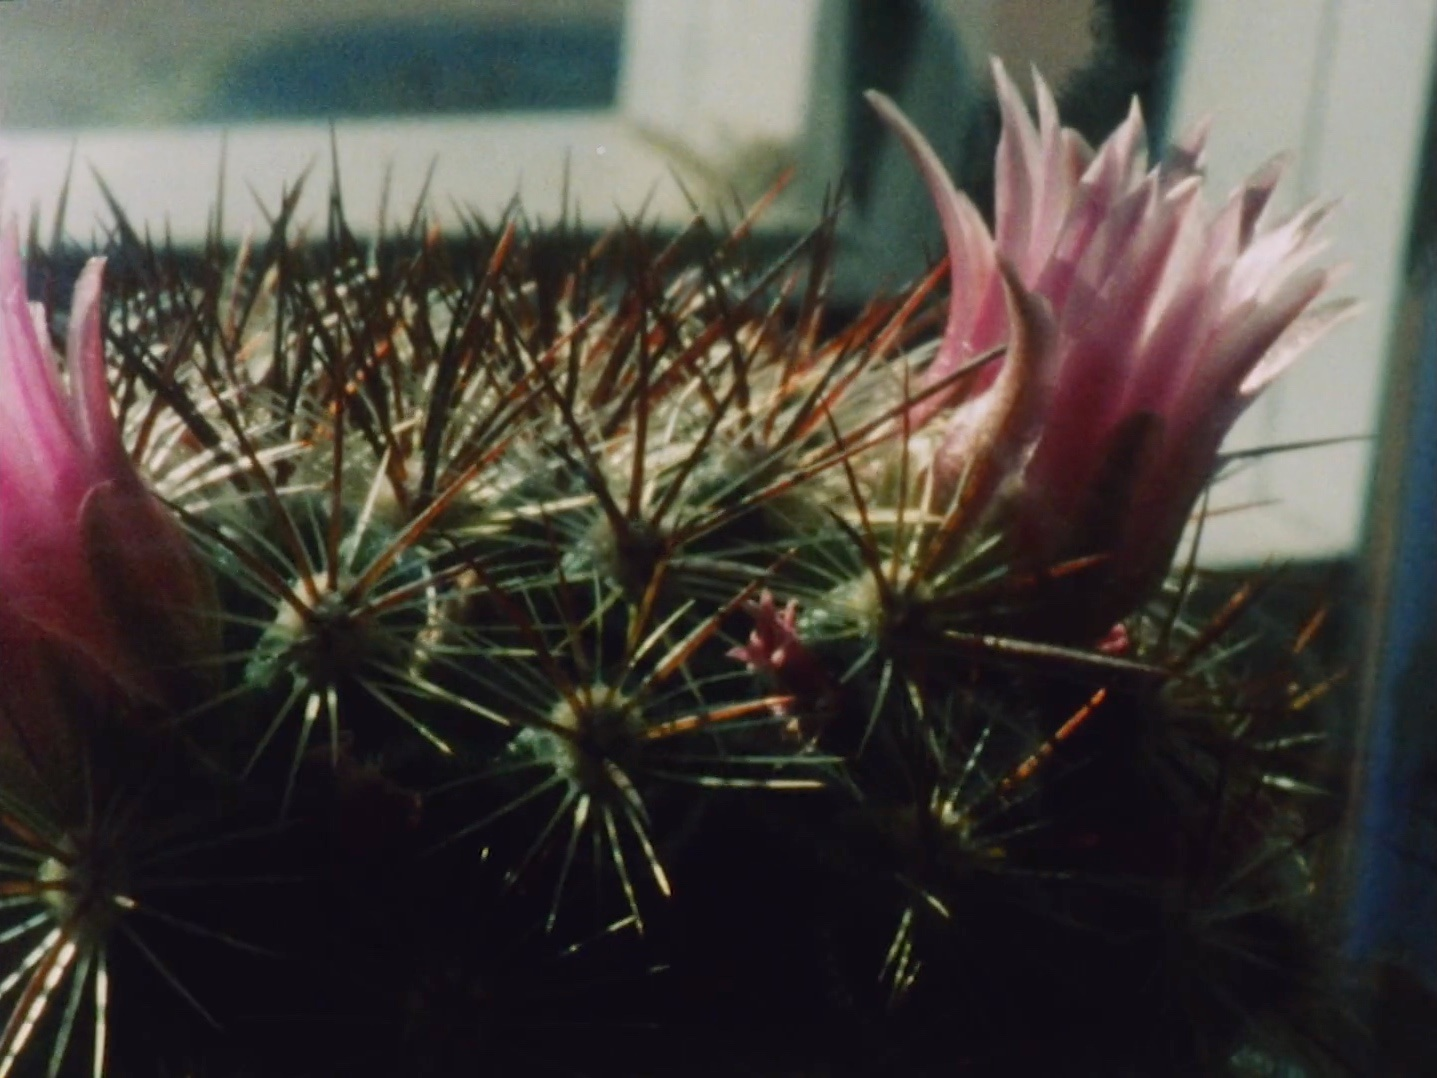 Helios     Eric Stewart   2018 | 5 minutes | USA | 16mm | color | sound  Time-lapses of cacti and succulent over the course of a year. Environmental data drives the tone and filtration of the sounds while the rising and setting of the sun illuminates plant growth in and out phase with each eachother. -ES